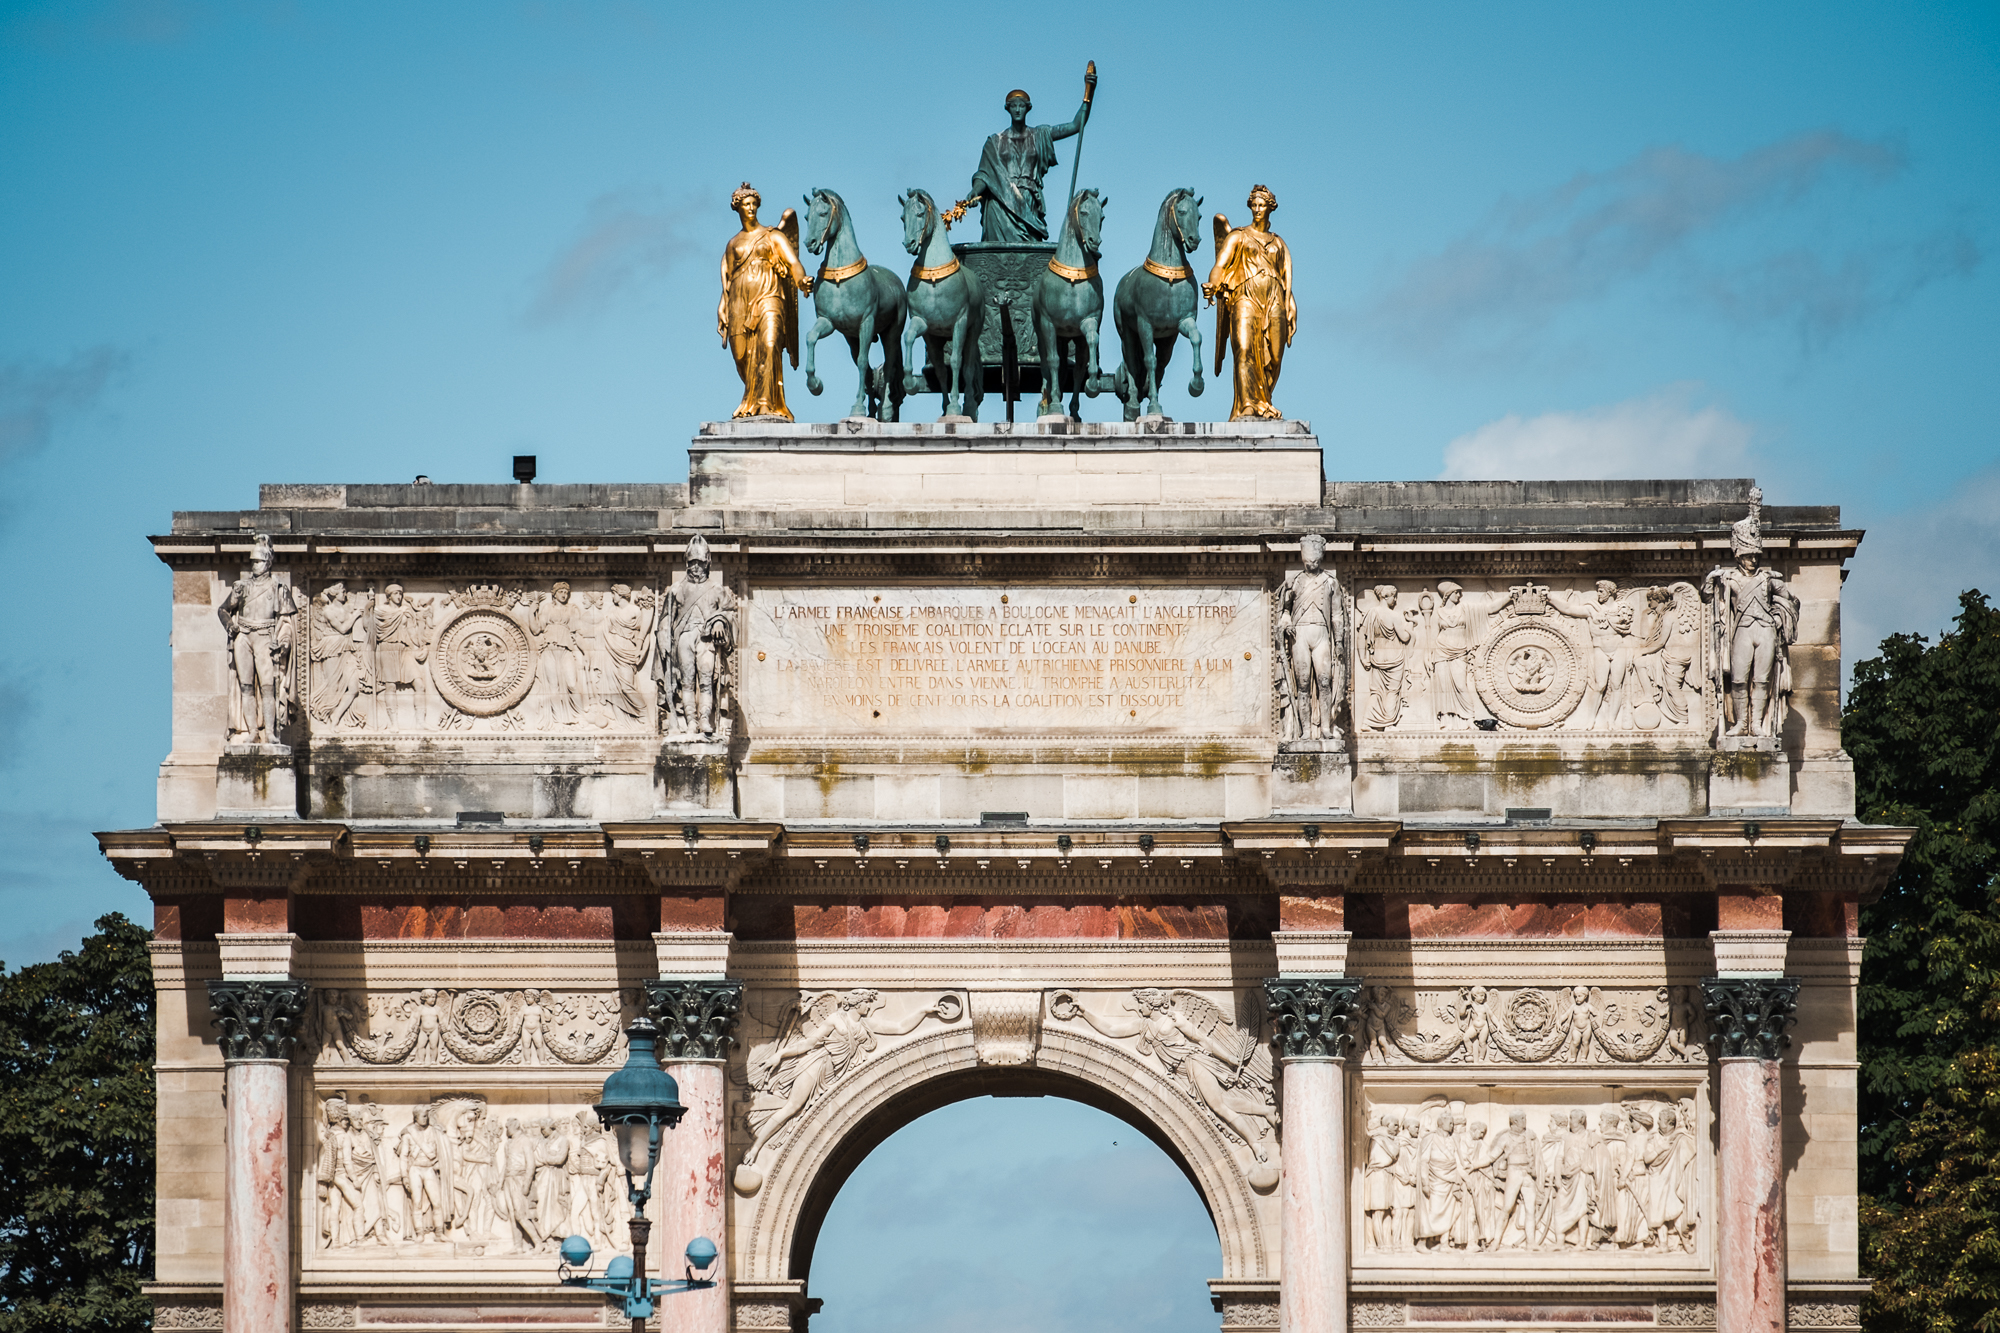 Carrousel Arc de Triomphe | Fujifilm XT2 | XF55-200mm | 164mm | 1/2,500 second | f/5 | ISO200